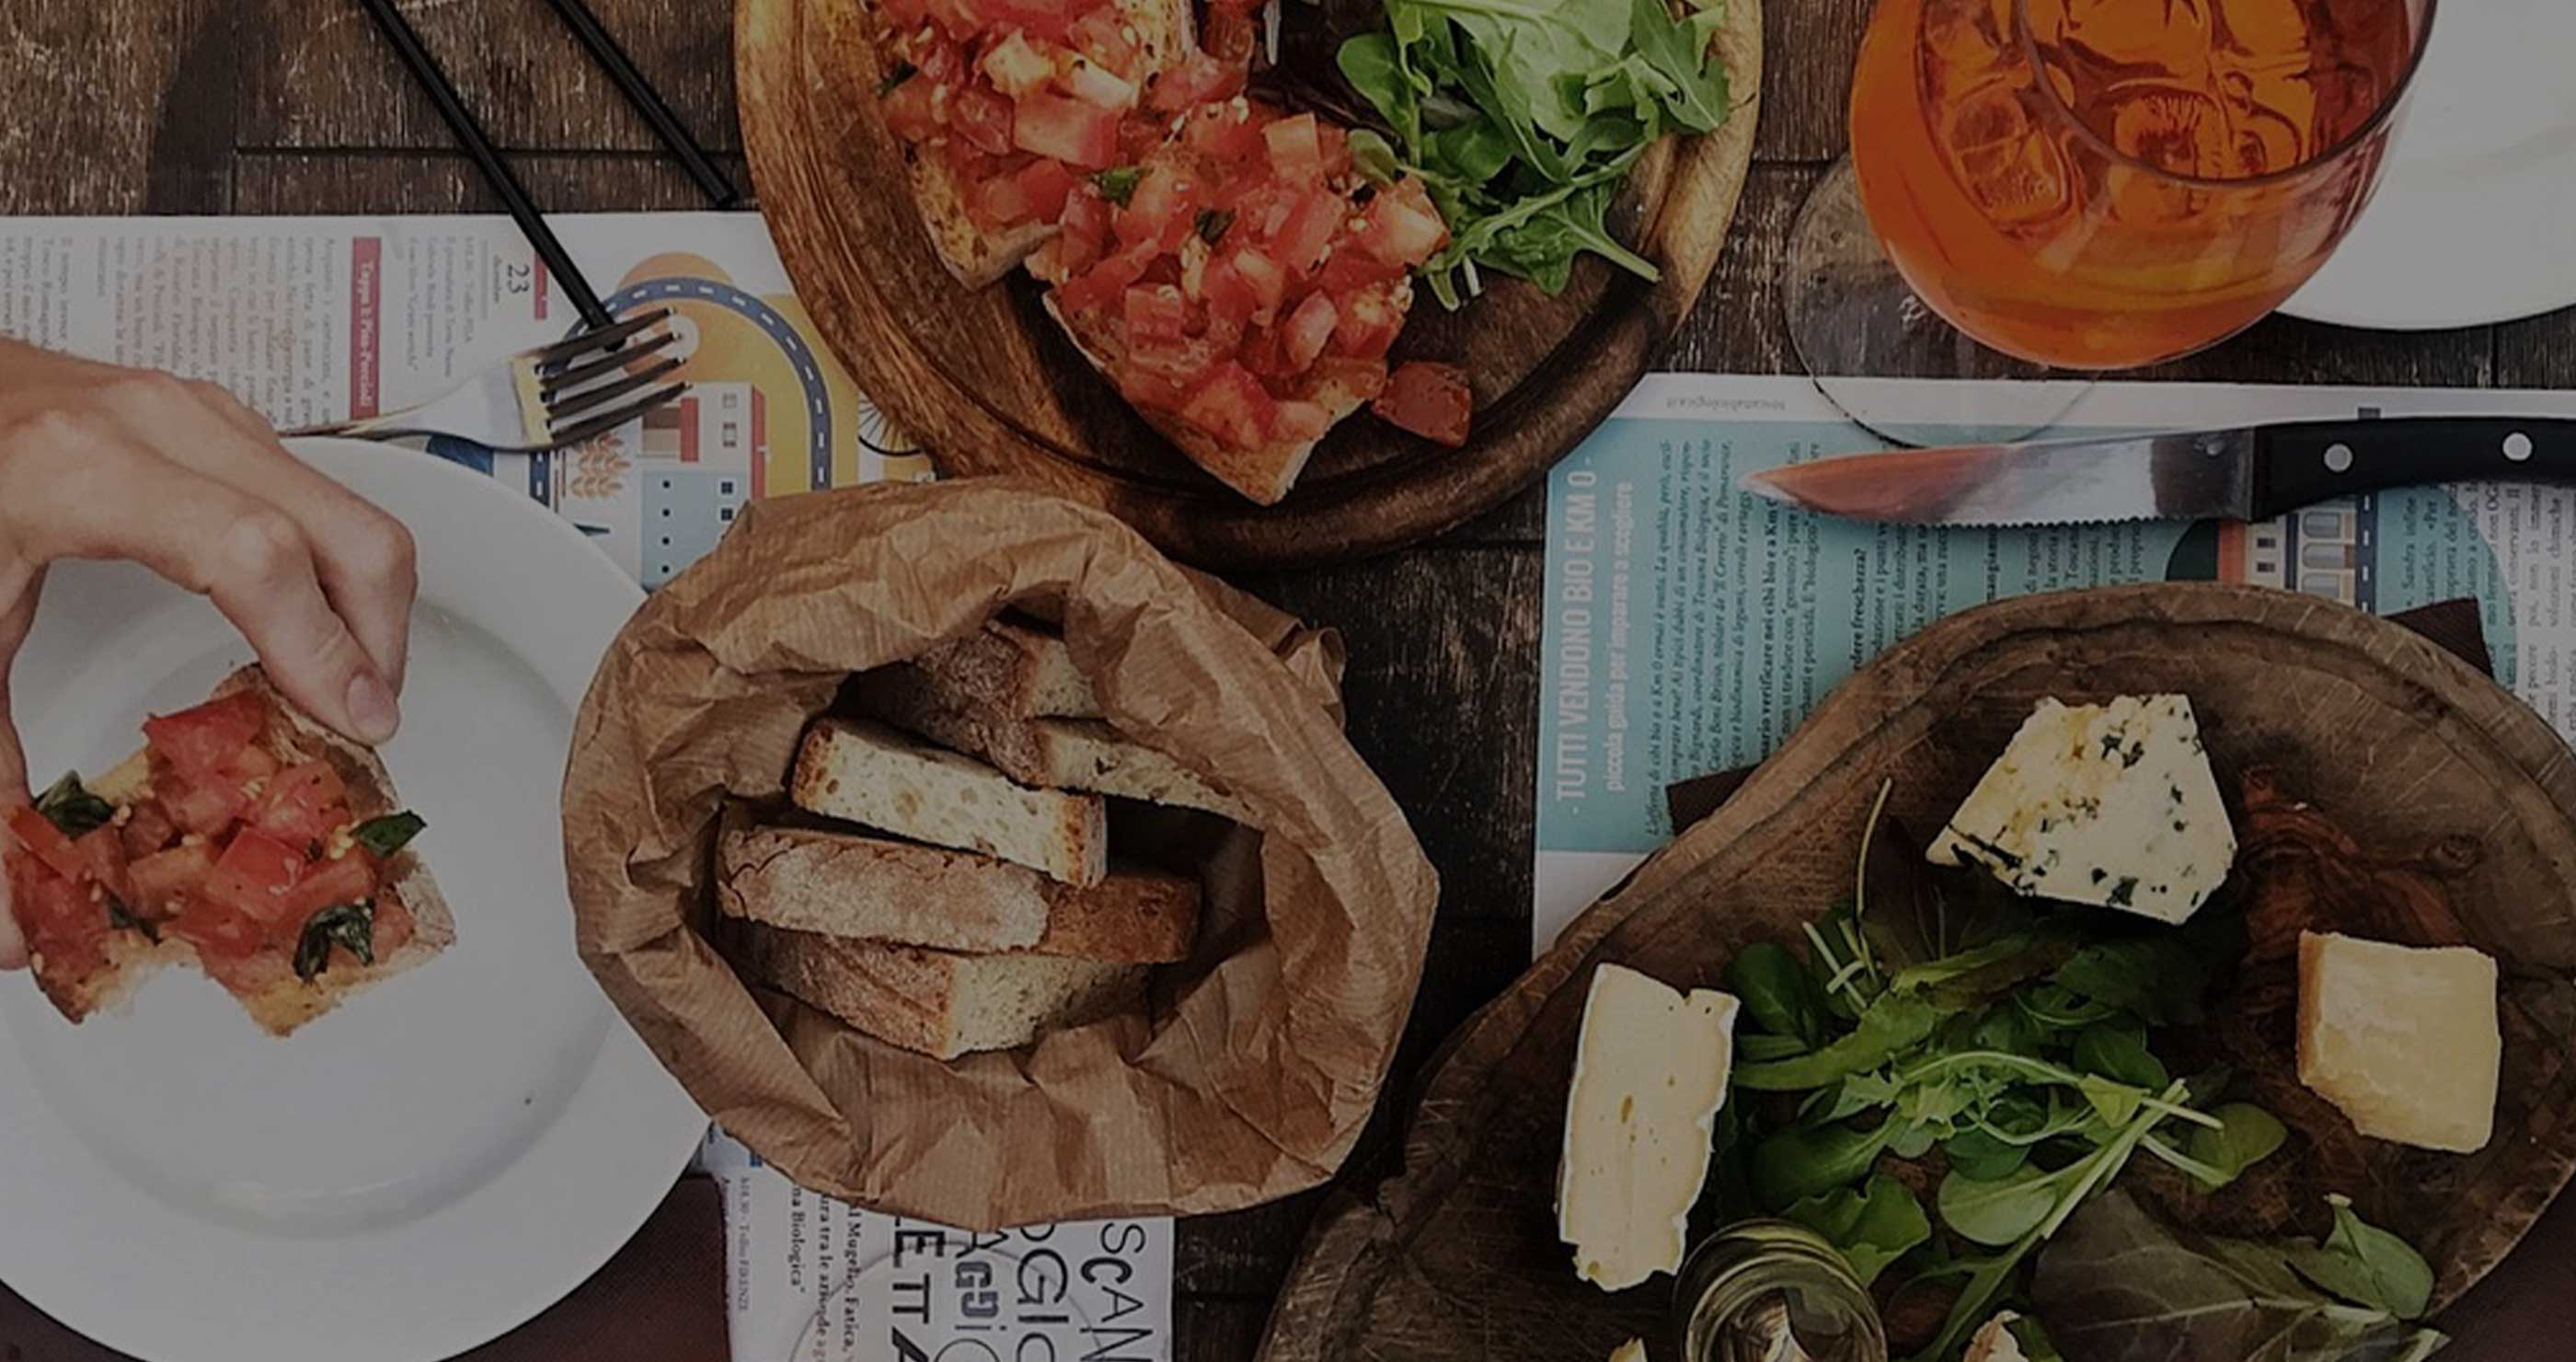 Table with artisinal bread and bruschetta by Diala's Kitchen